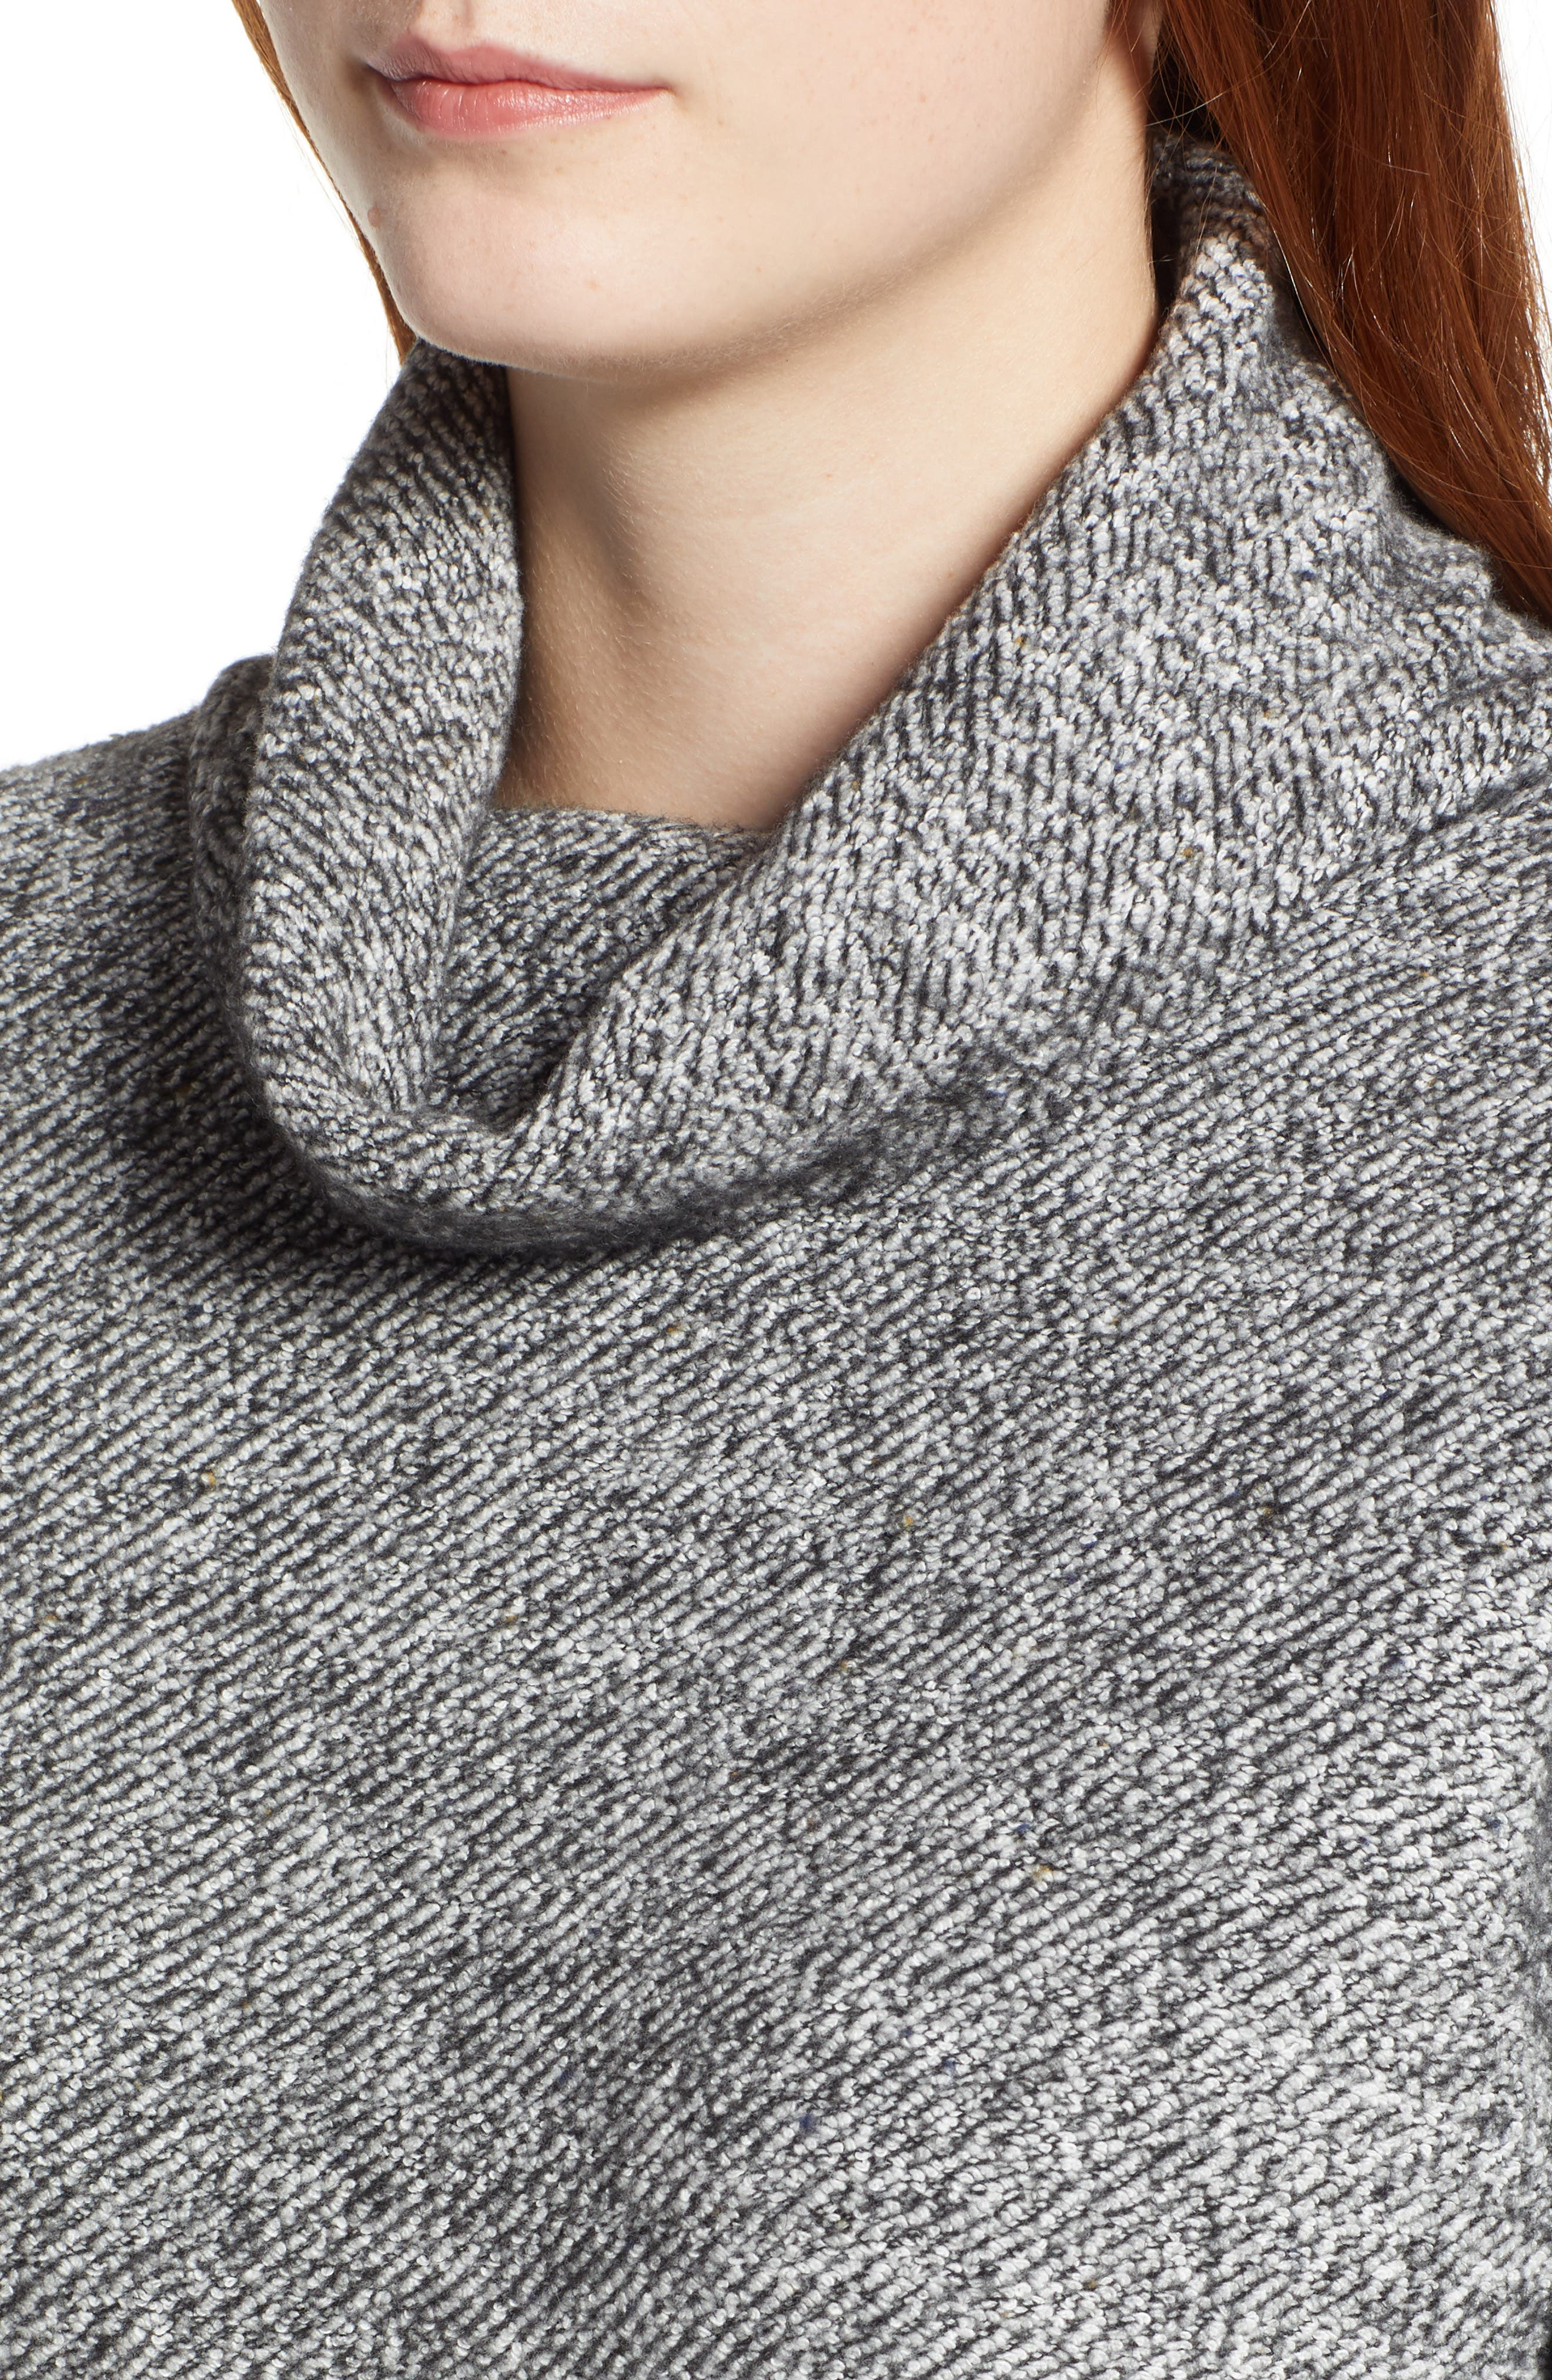 Tweed Cowl Neck Sweater,                             Alternate thumbnail 4, color,                             001